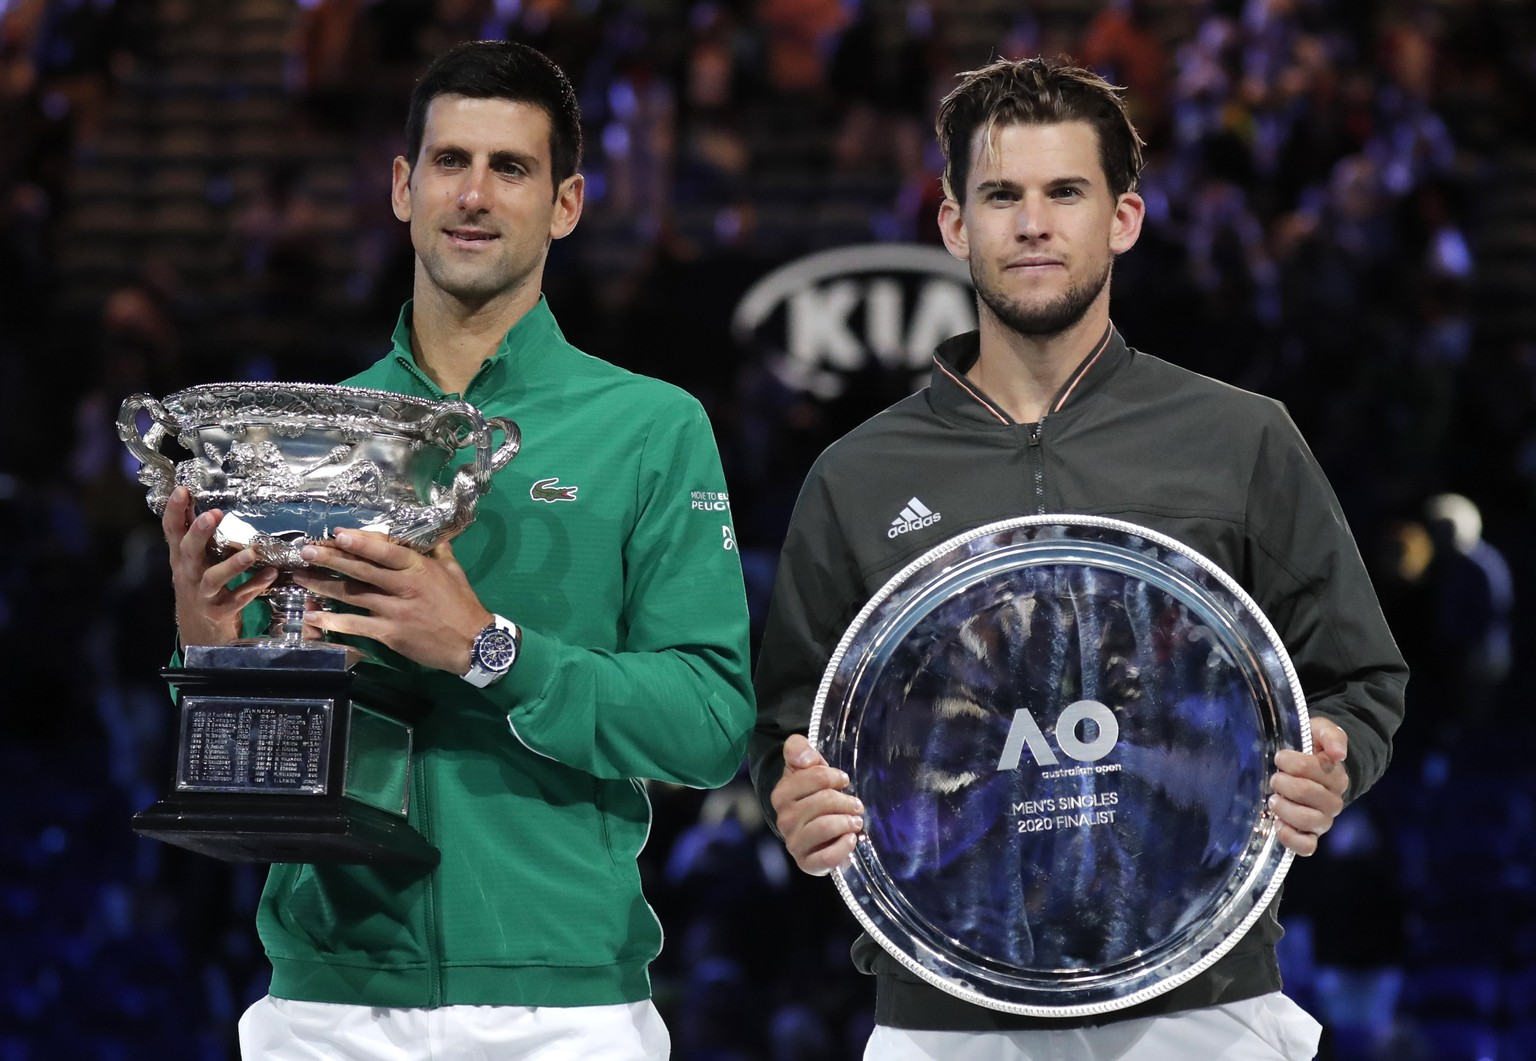 Serbia's Novak Djokovic, left, holds the Norman Brooks Challenge Cup after defeating Austria's Dominic Thiem in the men's singles final of the Australian Open tennis championship in Melbourne, Australia, early Monday, Feb. 3, 2020. (AP Photo/Lee Jin-man) Dominic Thiem,Novak Djokovic